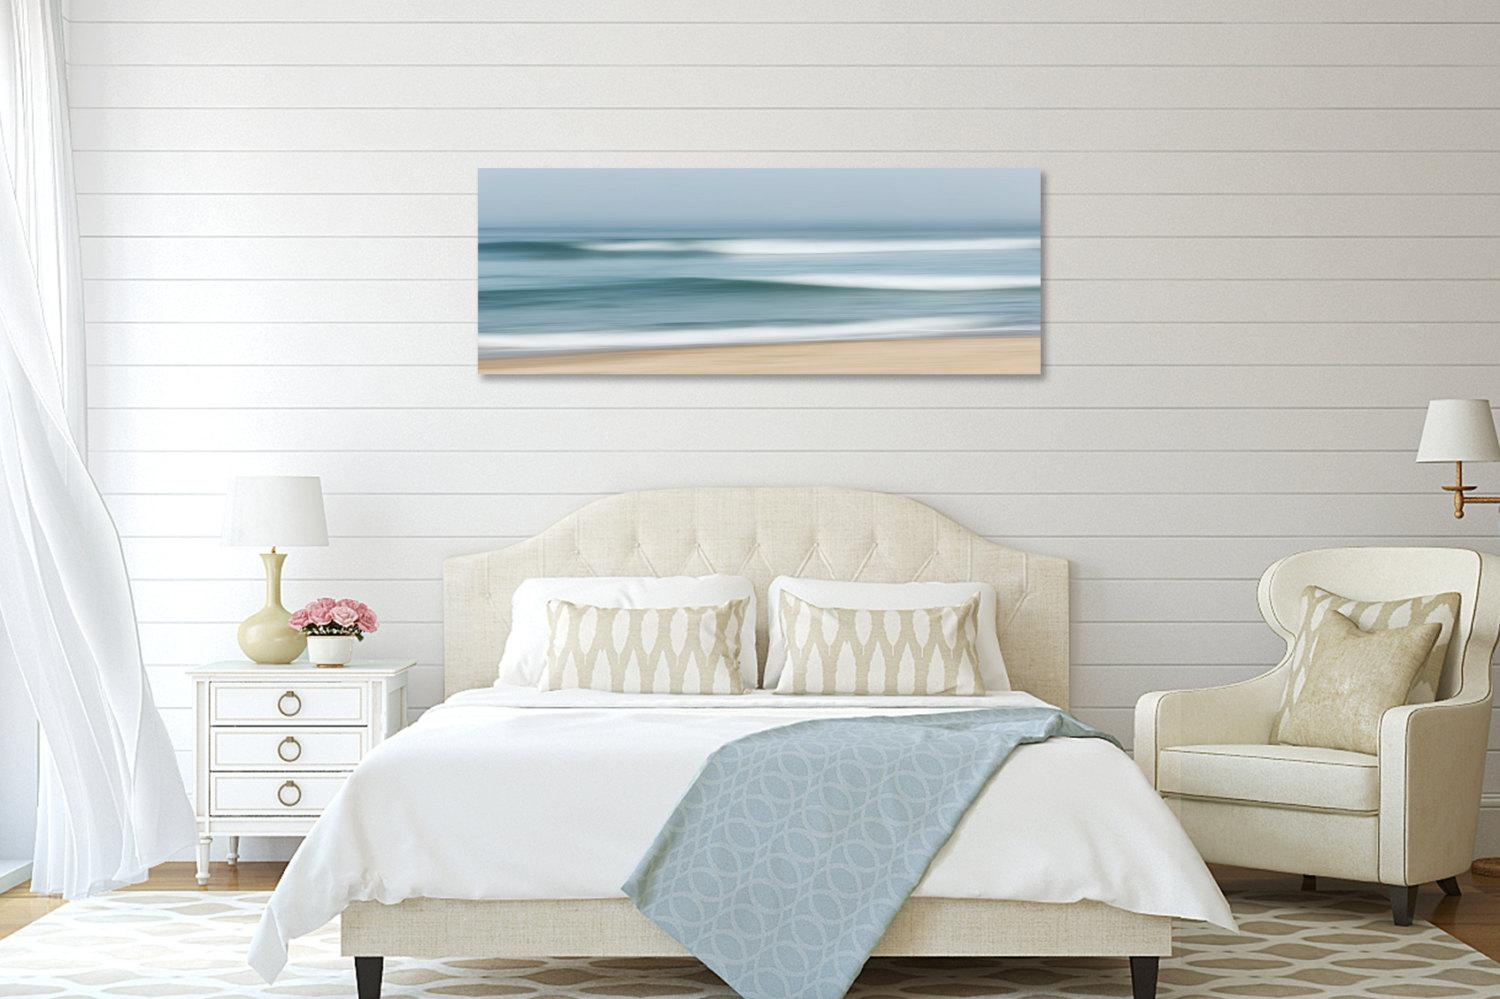 Large Abstract Beach Canvas Wall Art Ocean Seascape Pertaining To Nautical Canvas Wall Art (Image 3 of 20)